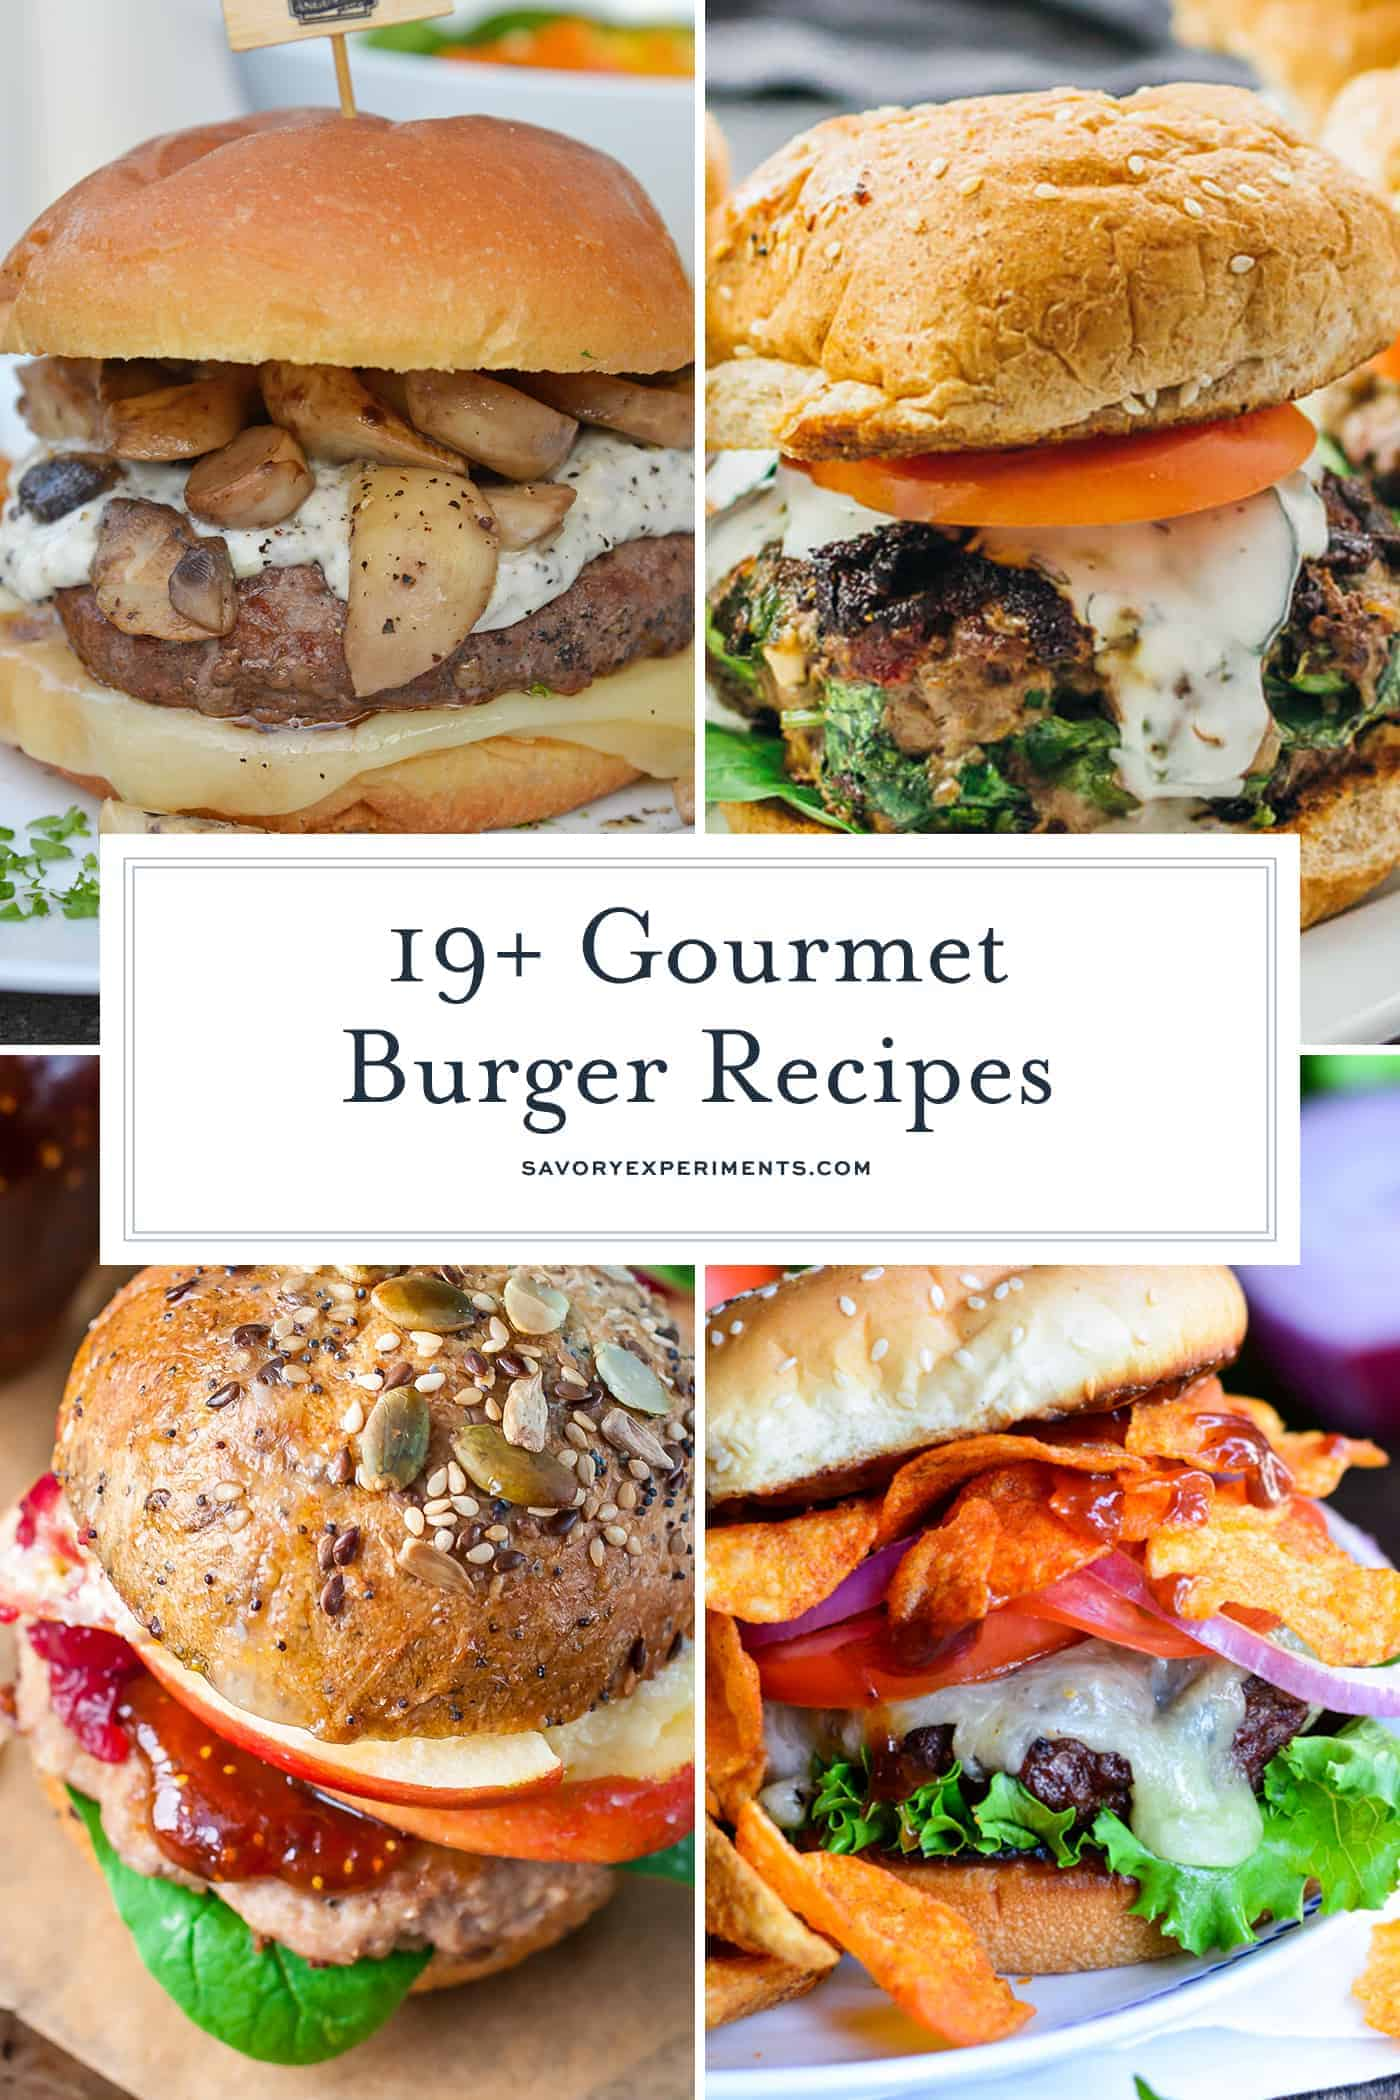 These are the best gourmet burger recipes! If you've ever wondered how to make gourmet burgers at home, you are going to be surprised at how easy they are! #gourmetburgerrecipes #gourmetburgerideas #gourmetbeefburgerrecipe www.savoryexperiments.com